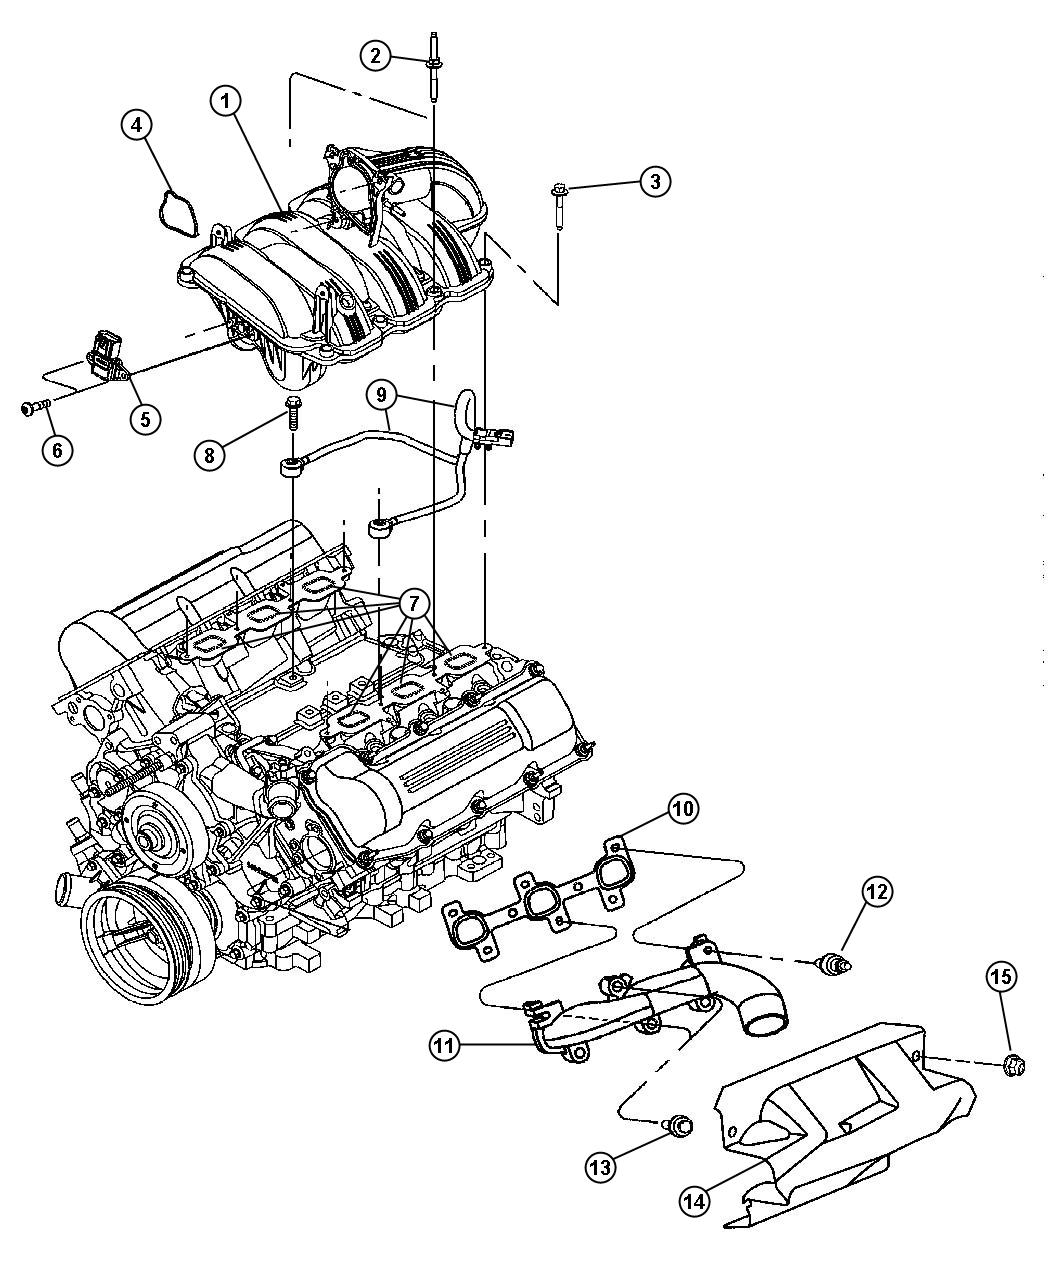 Daimler Sp250 Wiring Diagram